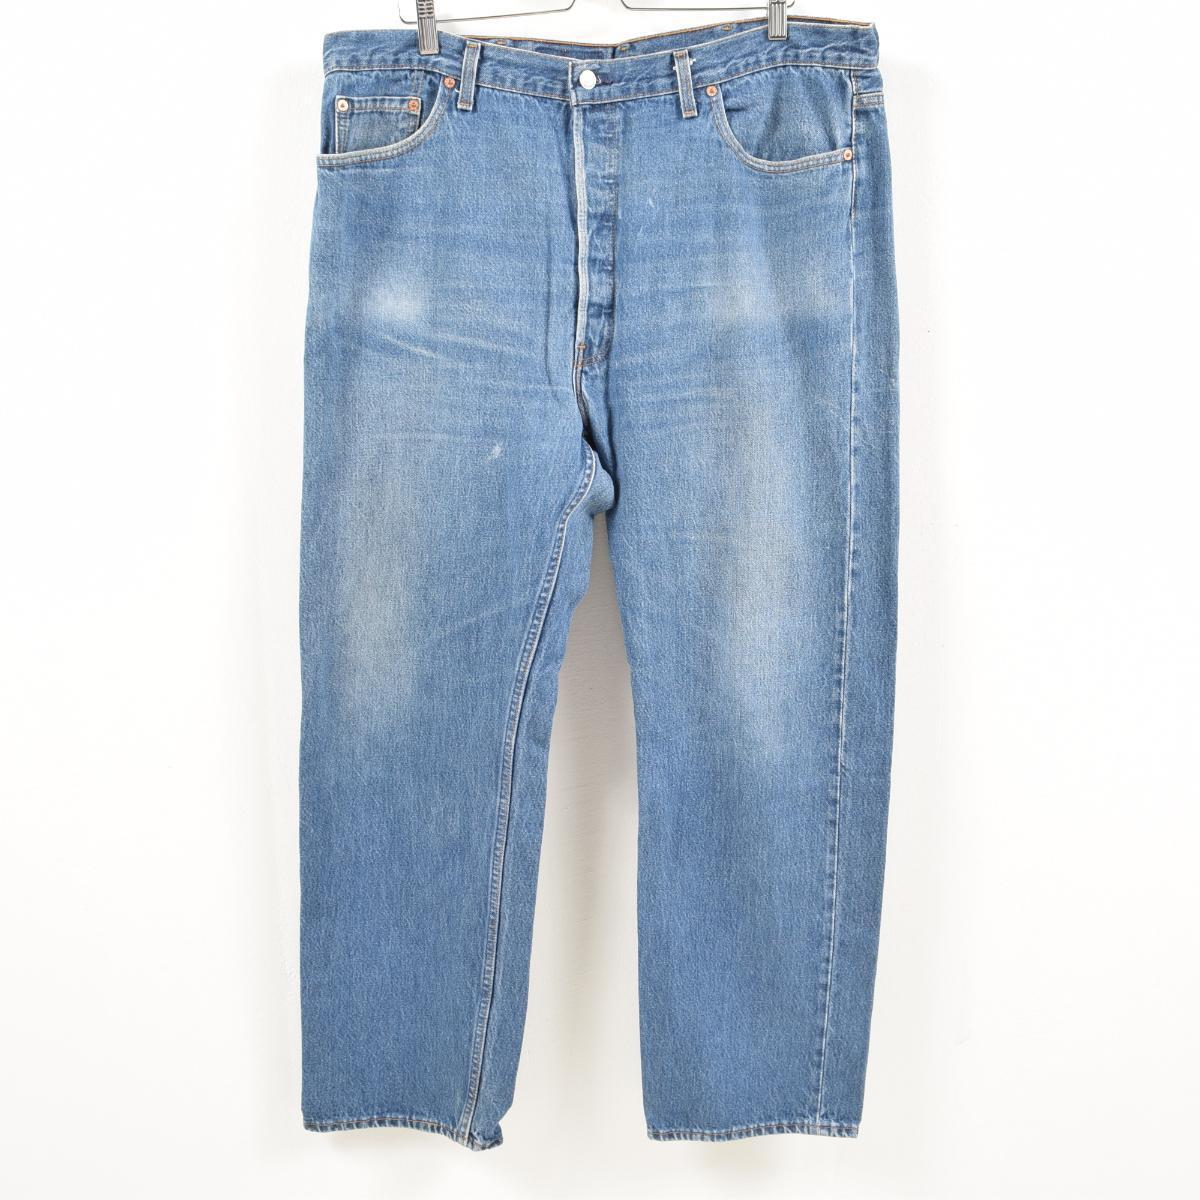 0c6fd00c0c9 Men w41 /wax2602 in the big size 90s made in Levis Levi's 501 jeans  straight ...